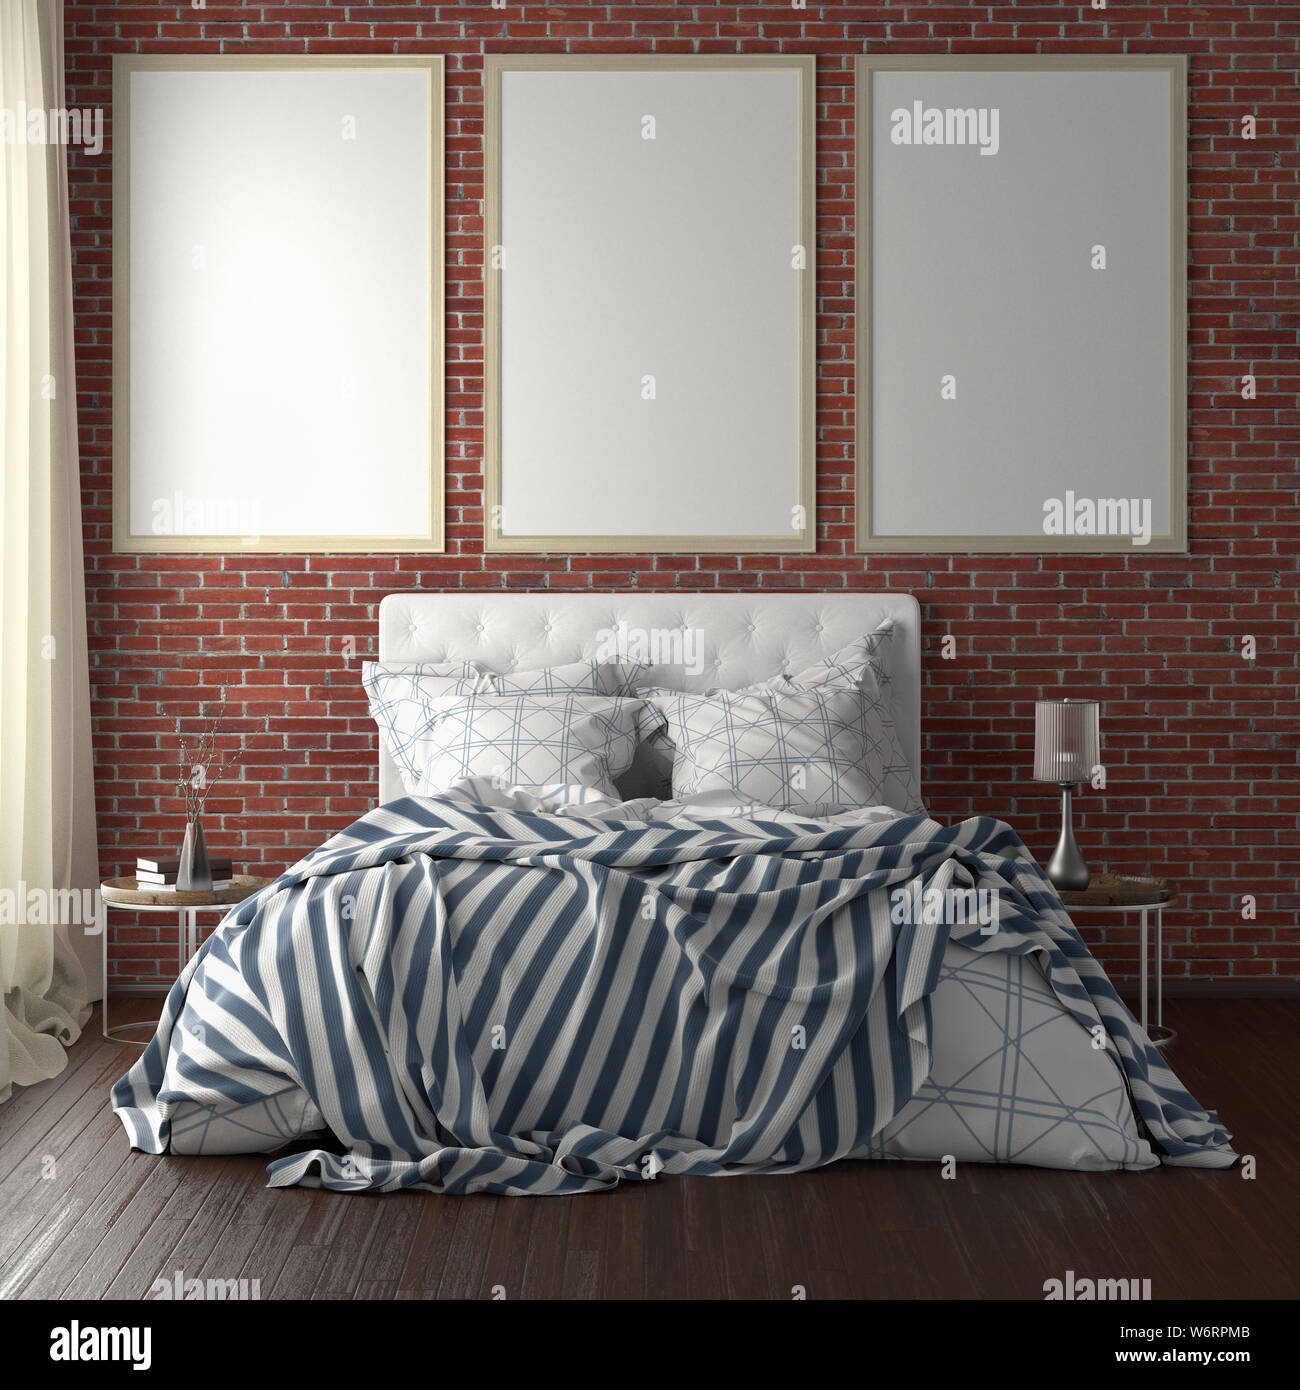 Three vertical poster frame mockups above the bed on red brick wall in bedroom. Soft morning light through the curtain. 3d illustration Stock Photo